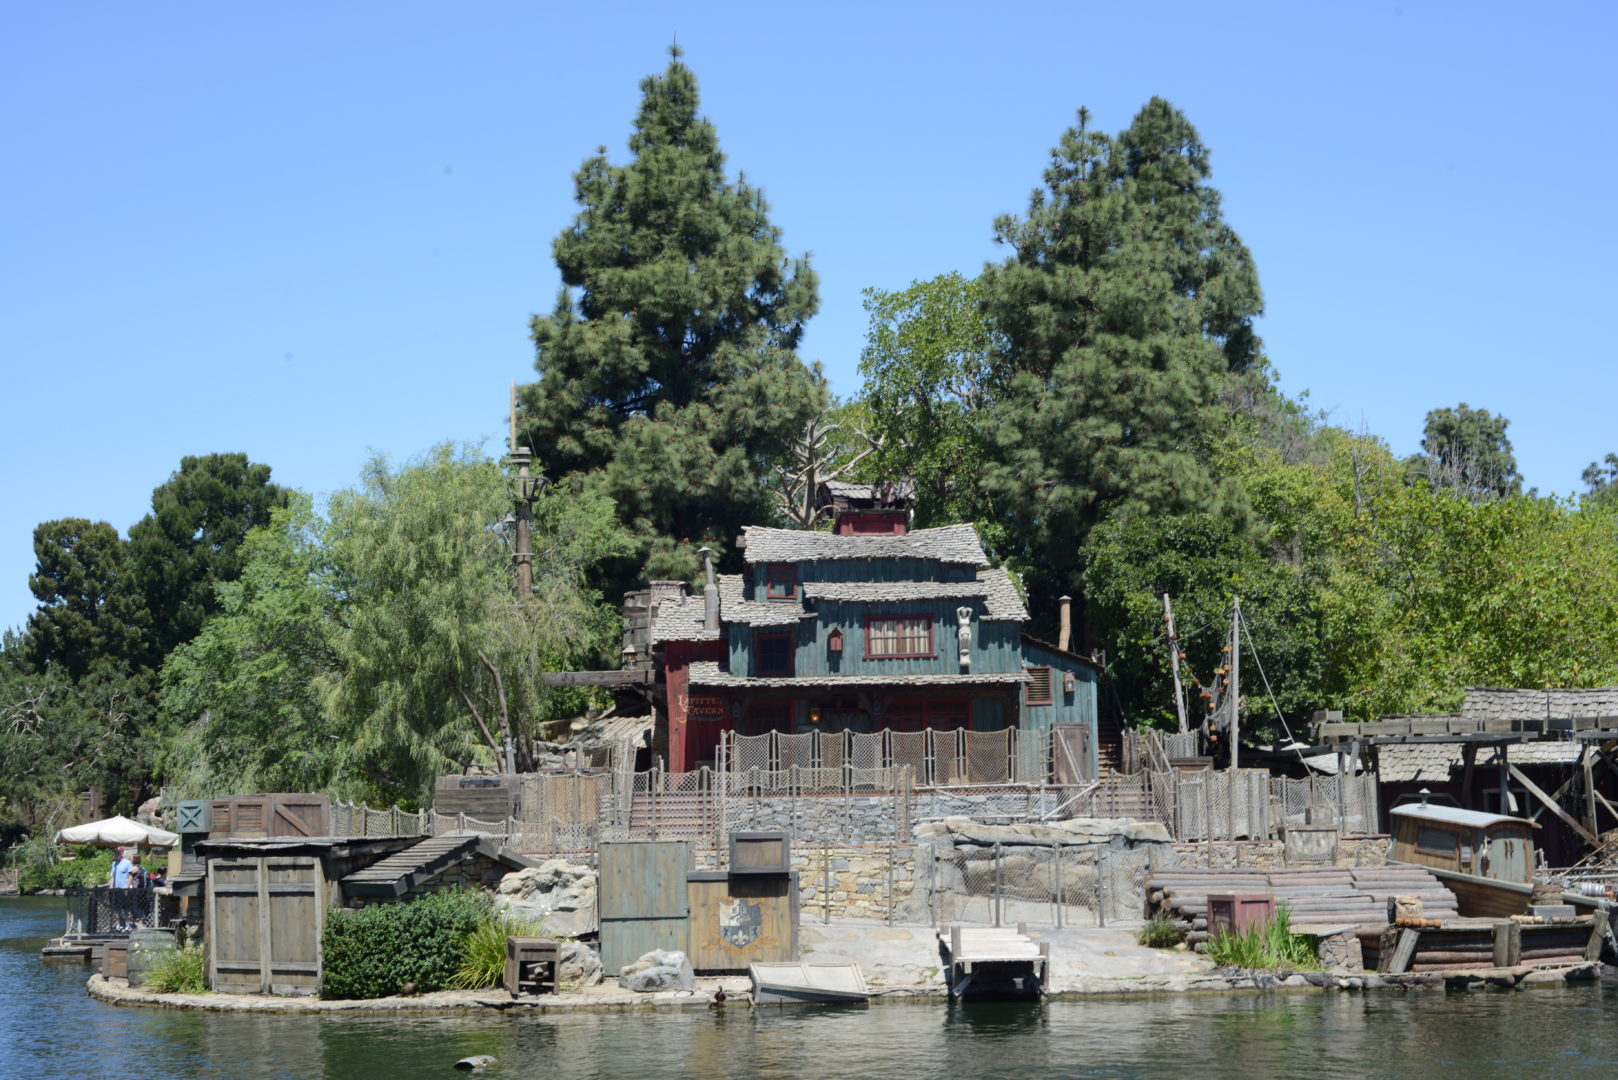 Pirate Lair on Tom Sawyer Island Surrounded by Rivers of America in Disneyland